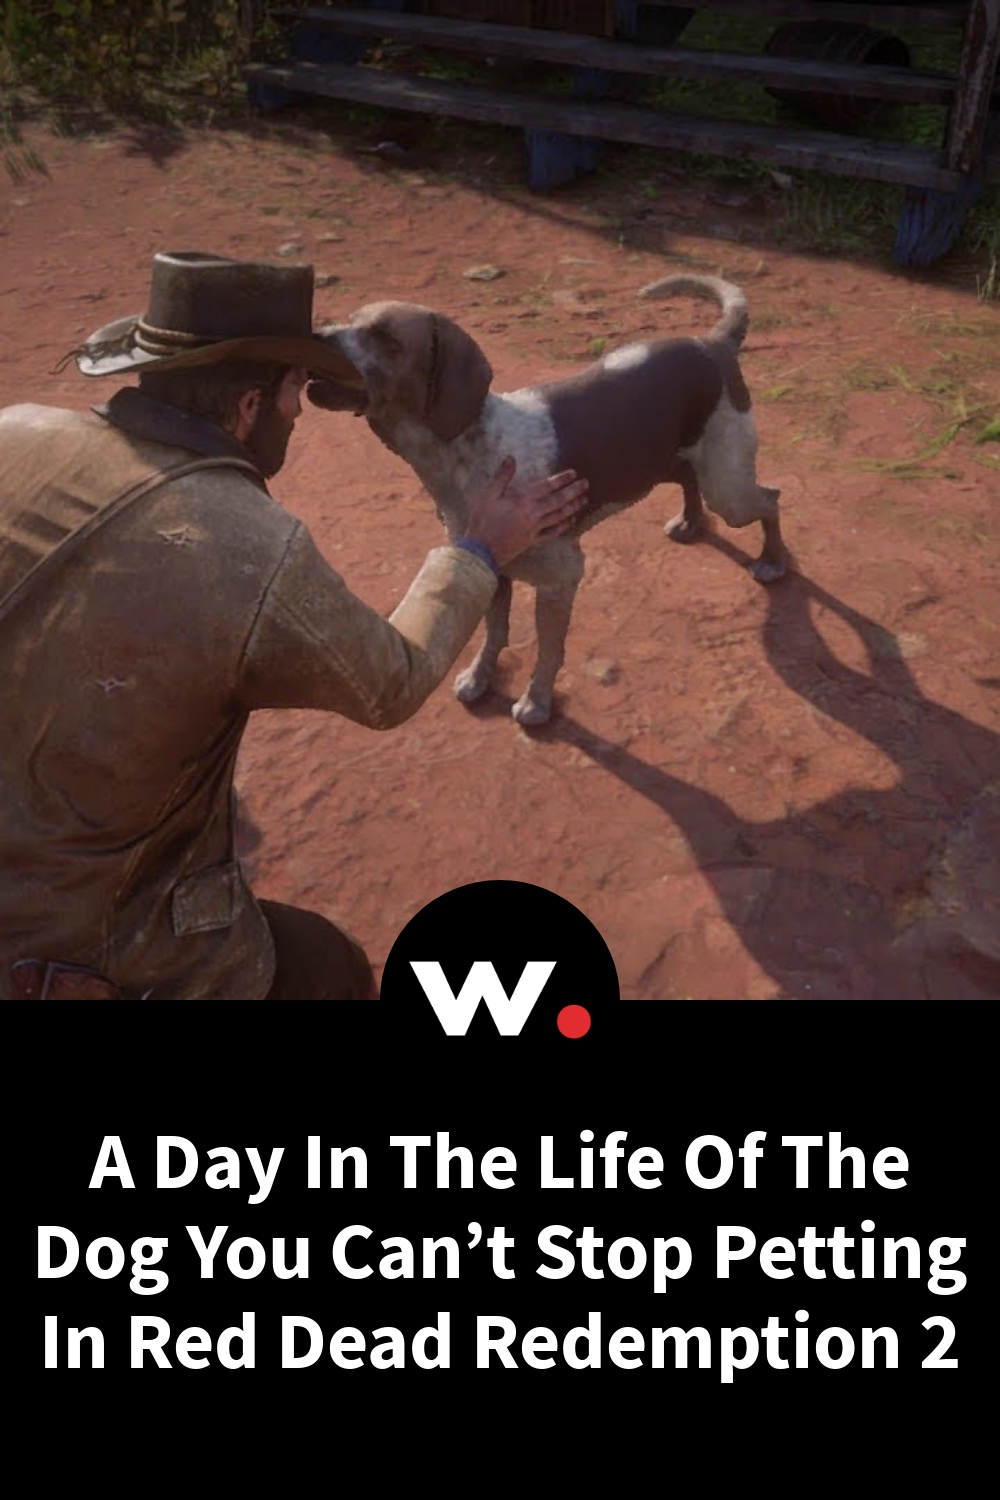 A Day In The Life Of The Dog You Can't Stop Petting In Red Dead Redemption 2